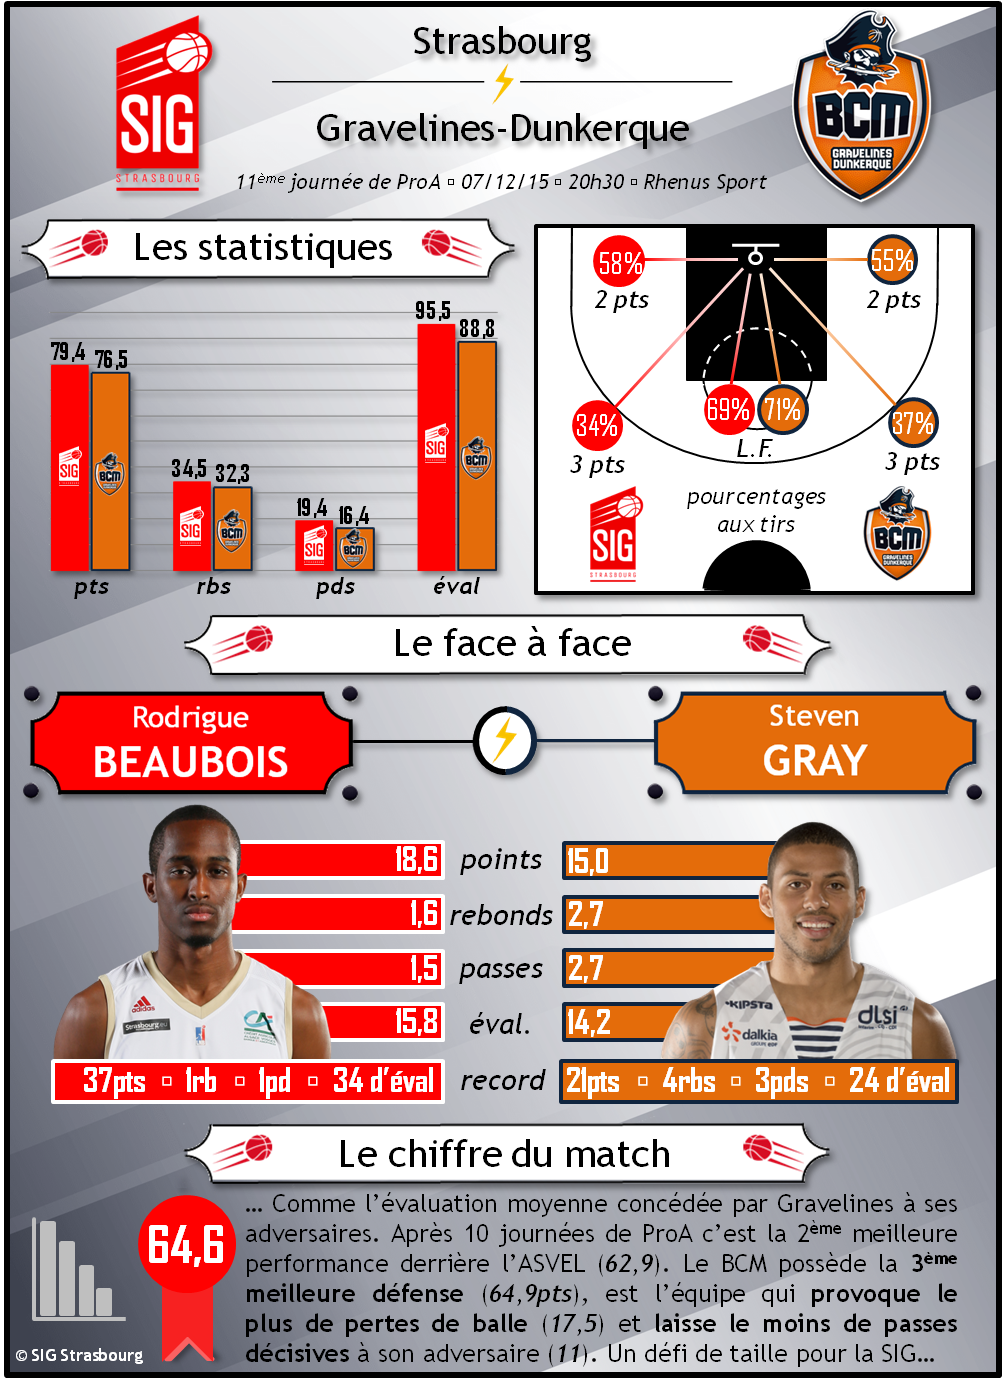 infographie2 SIG_BCM Gravelines-Dunkerque